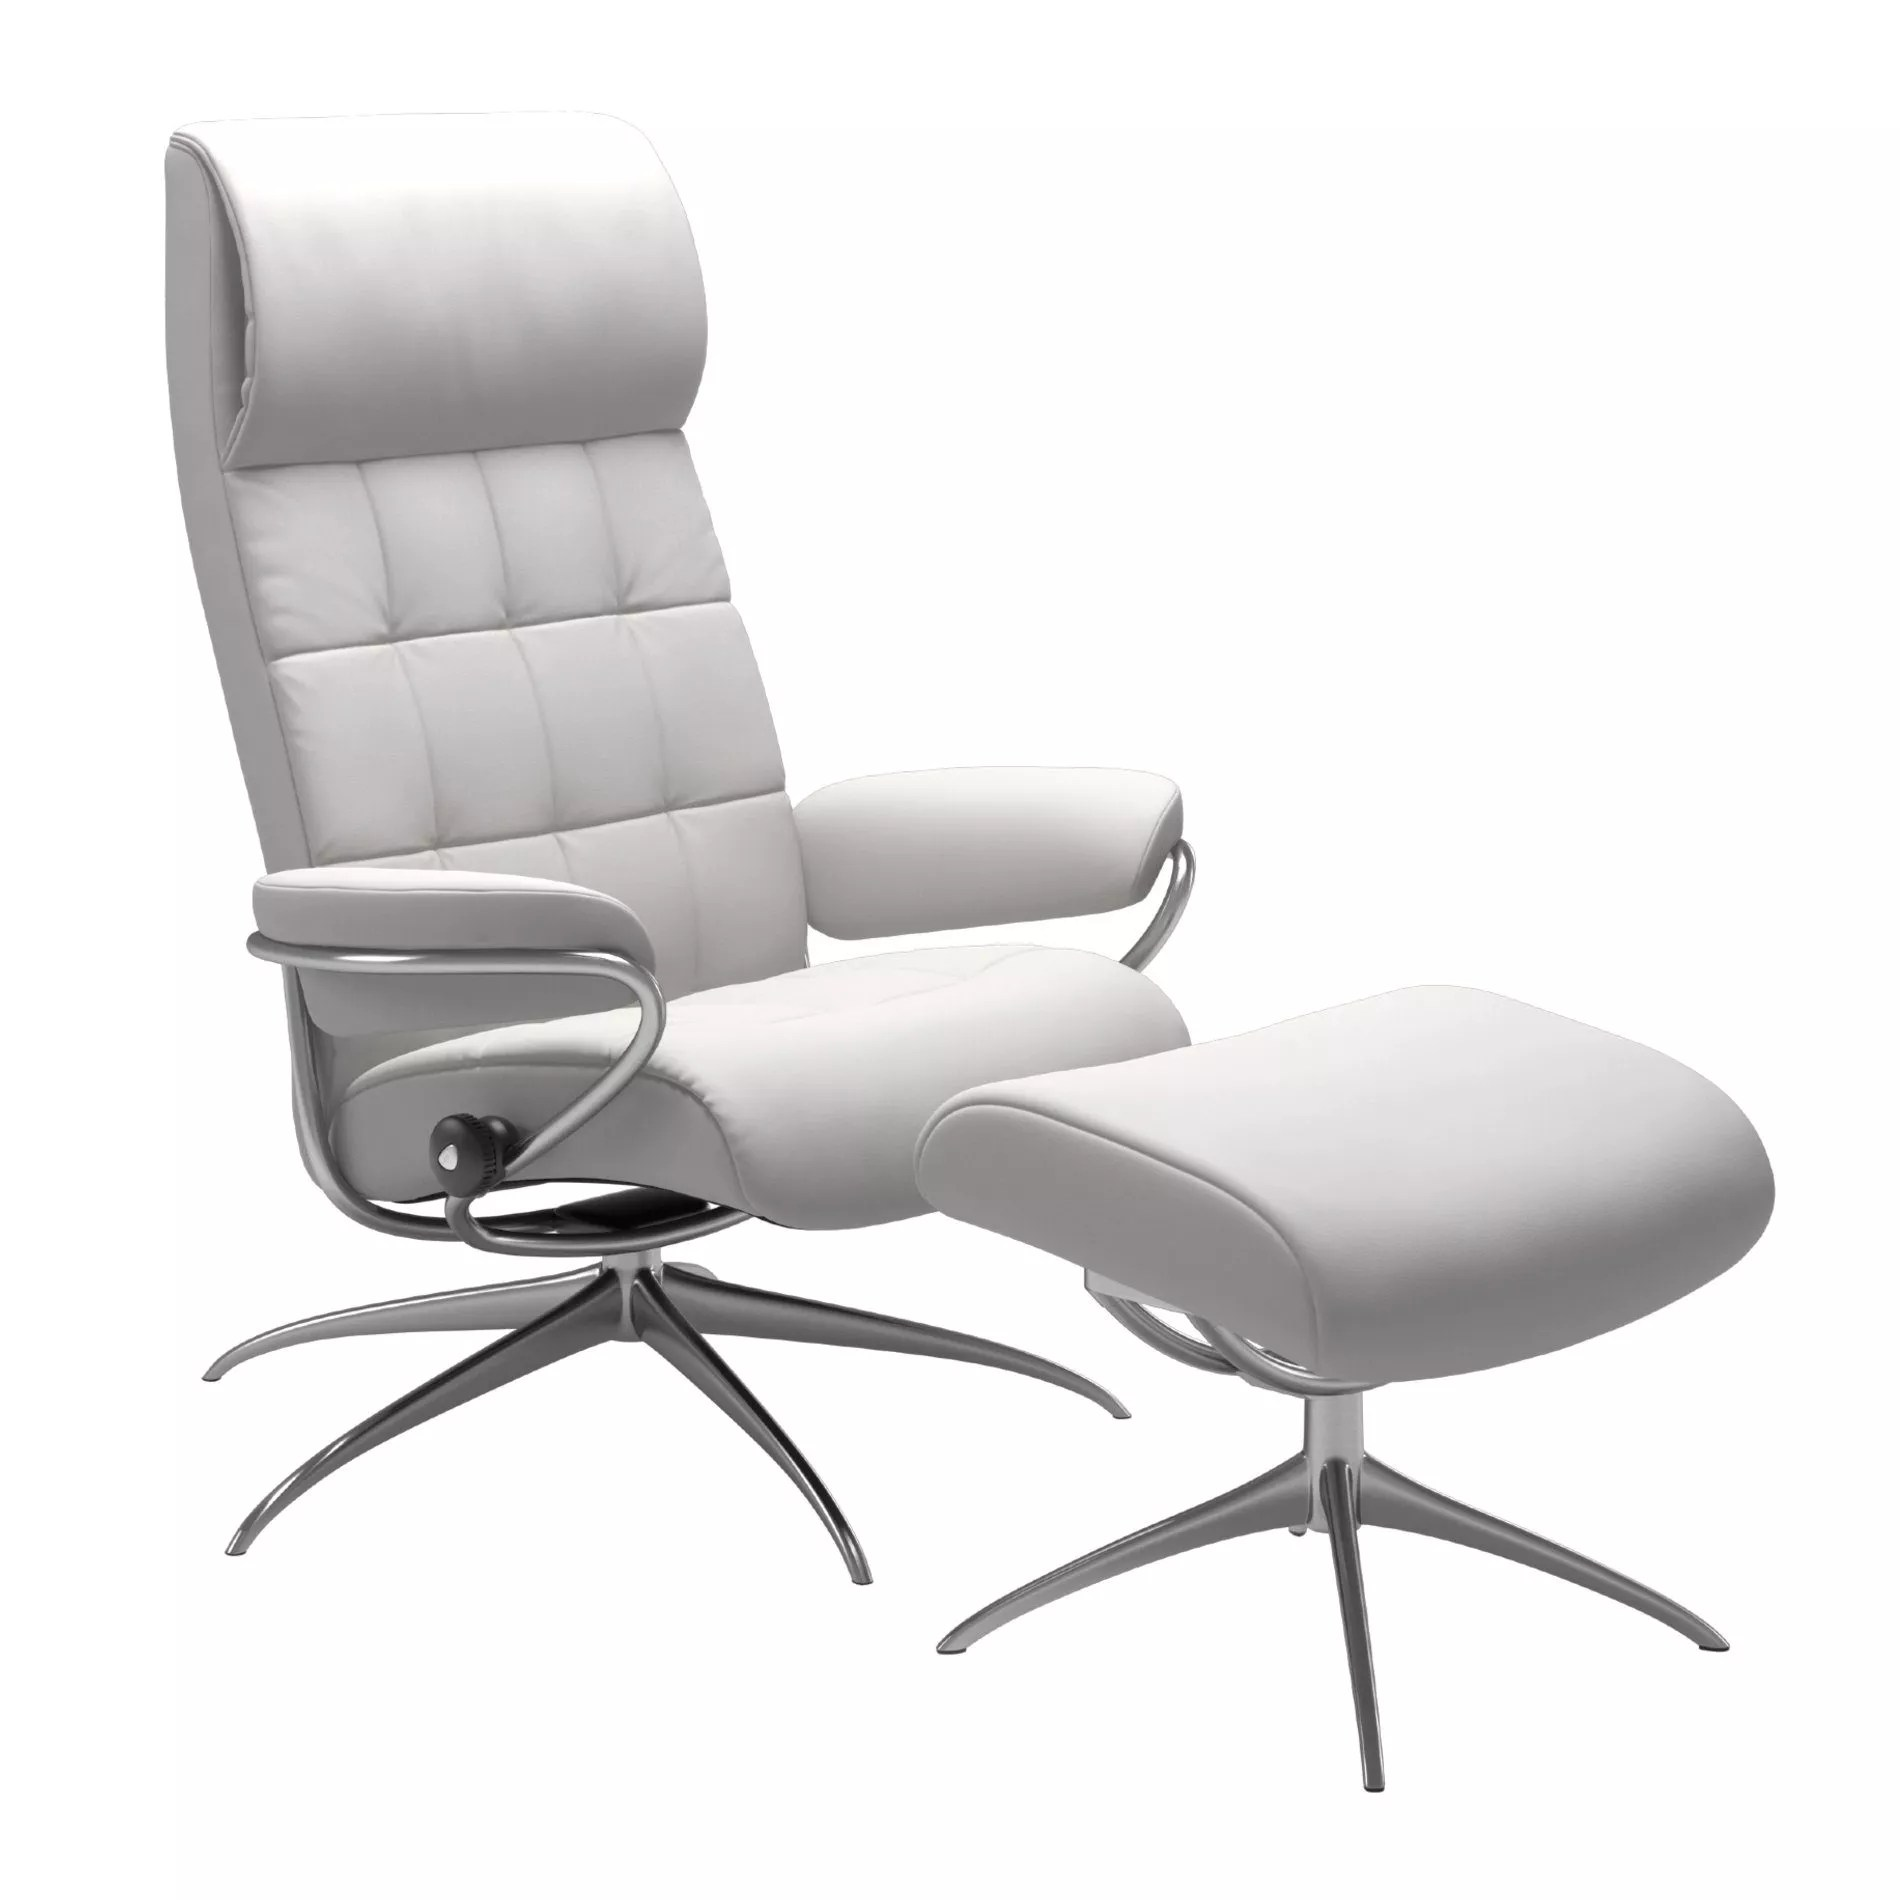 "Sessel Stressless Stressless ""london"" Sessel Mit Hocker - Wohnparc.de"